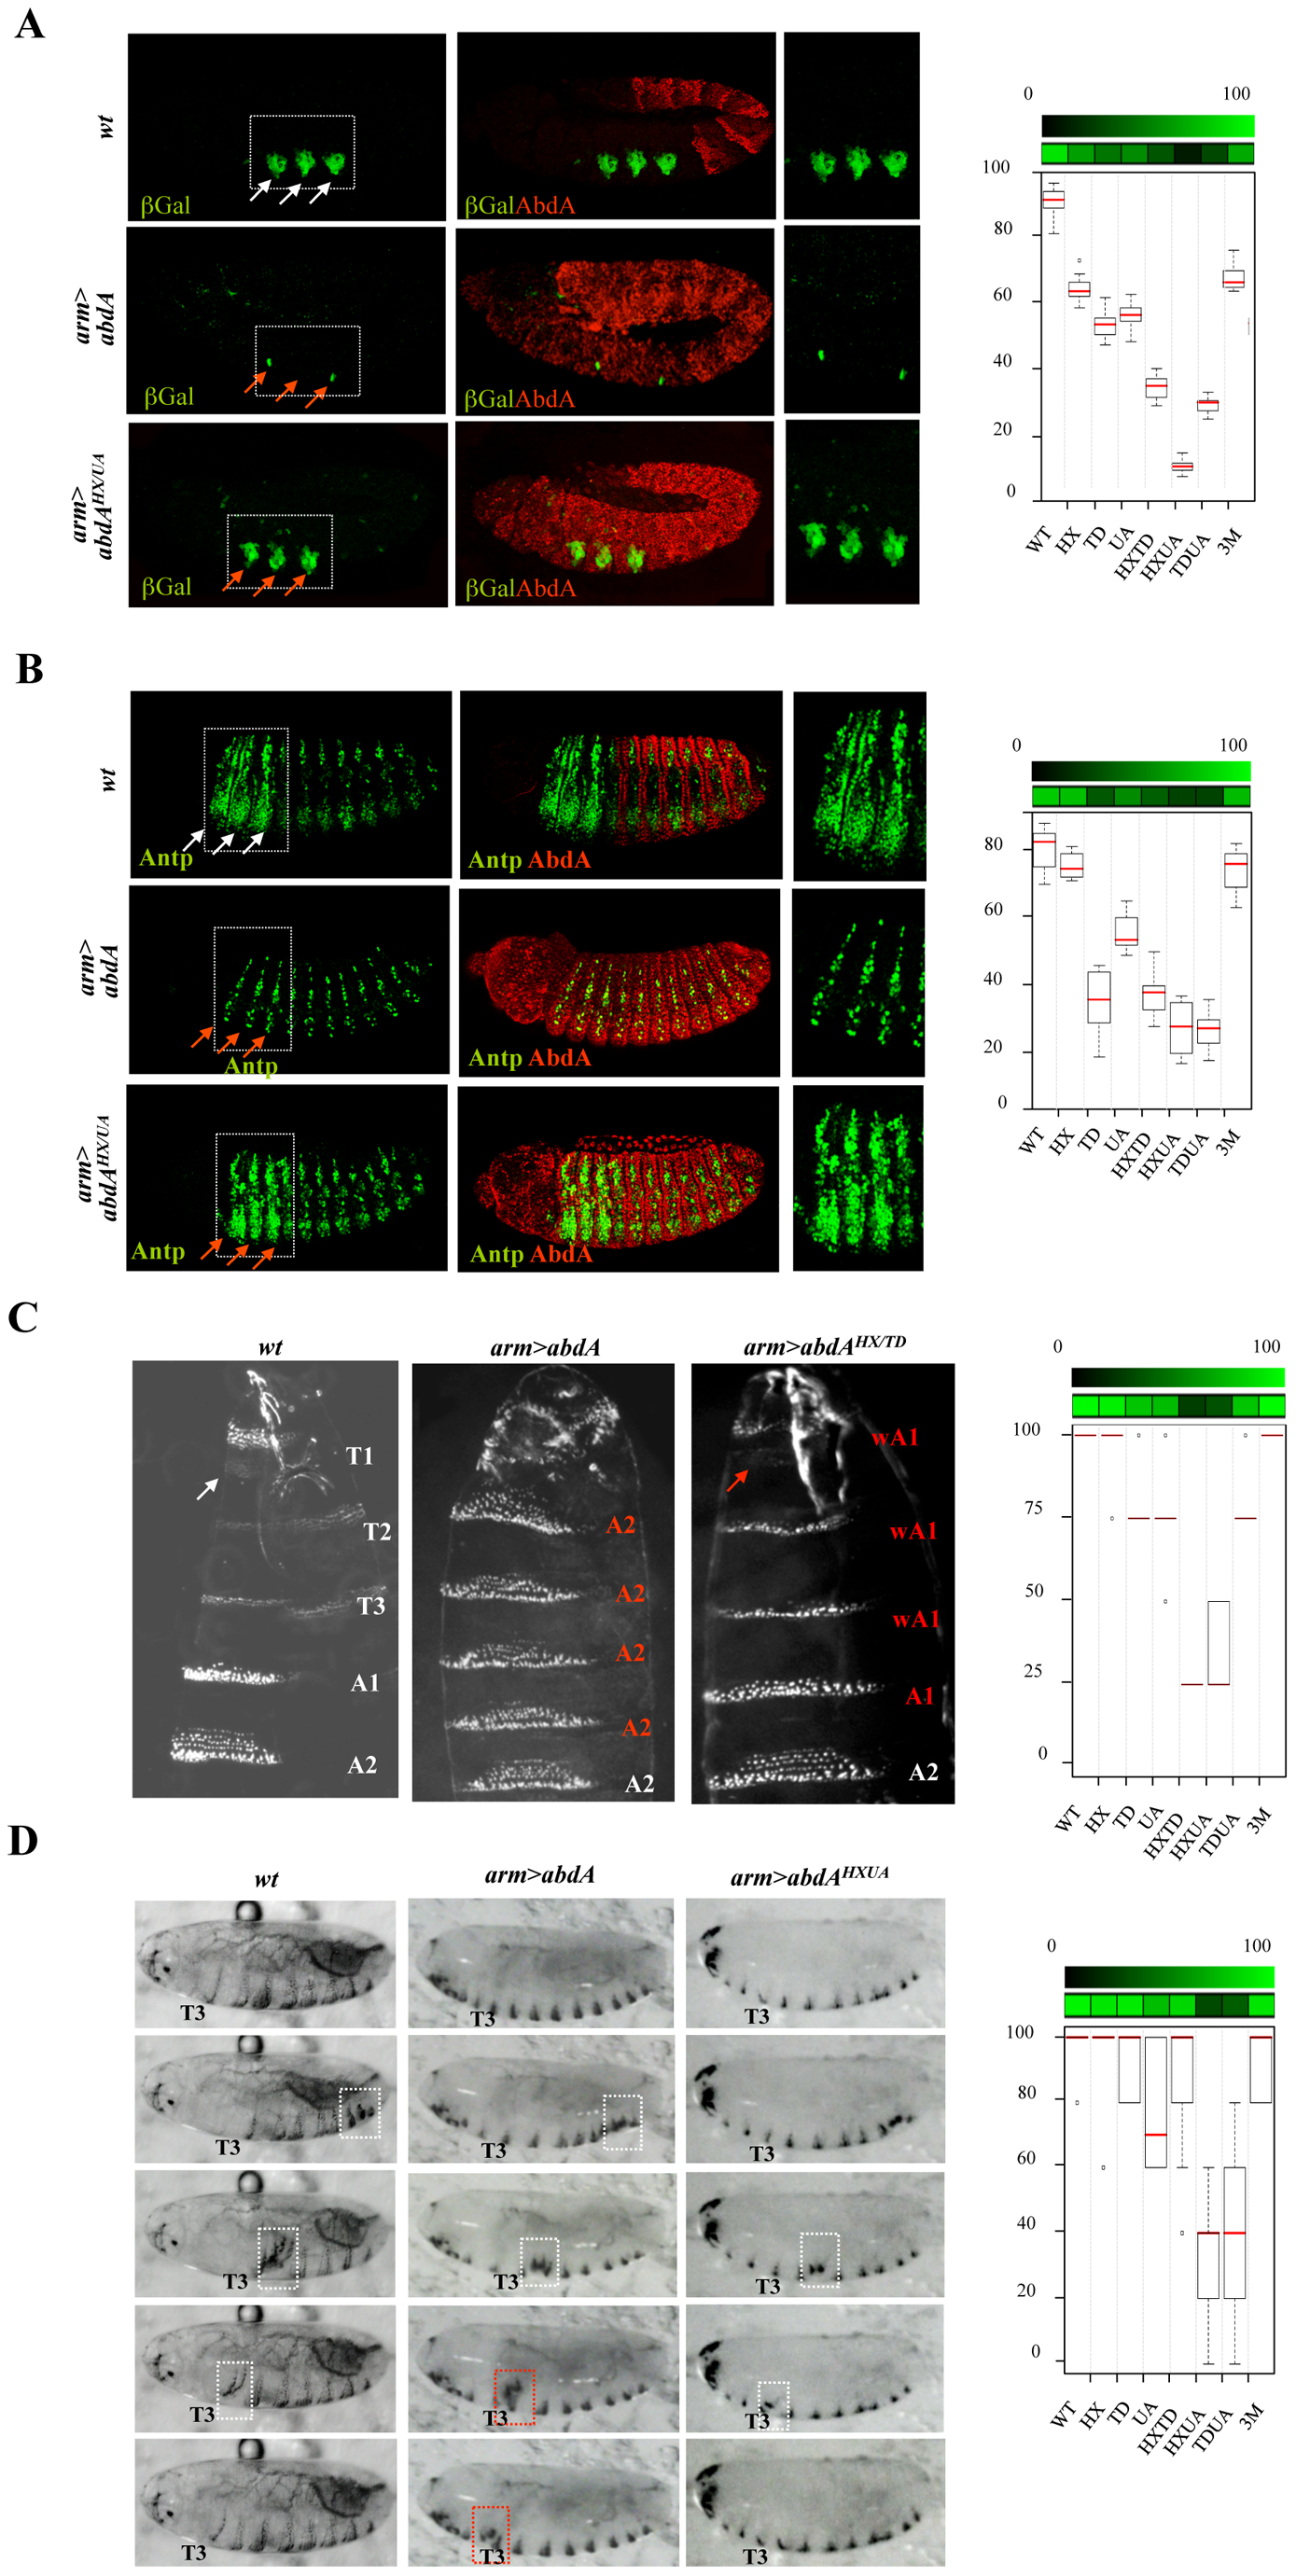 Mutually suppressive interaction of protein domains.